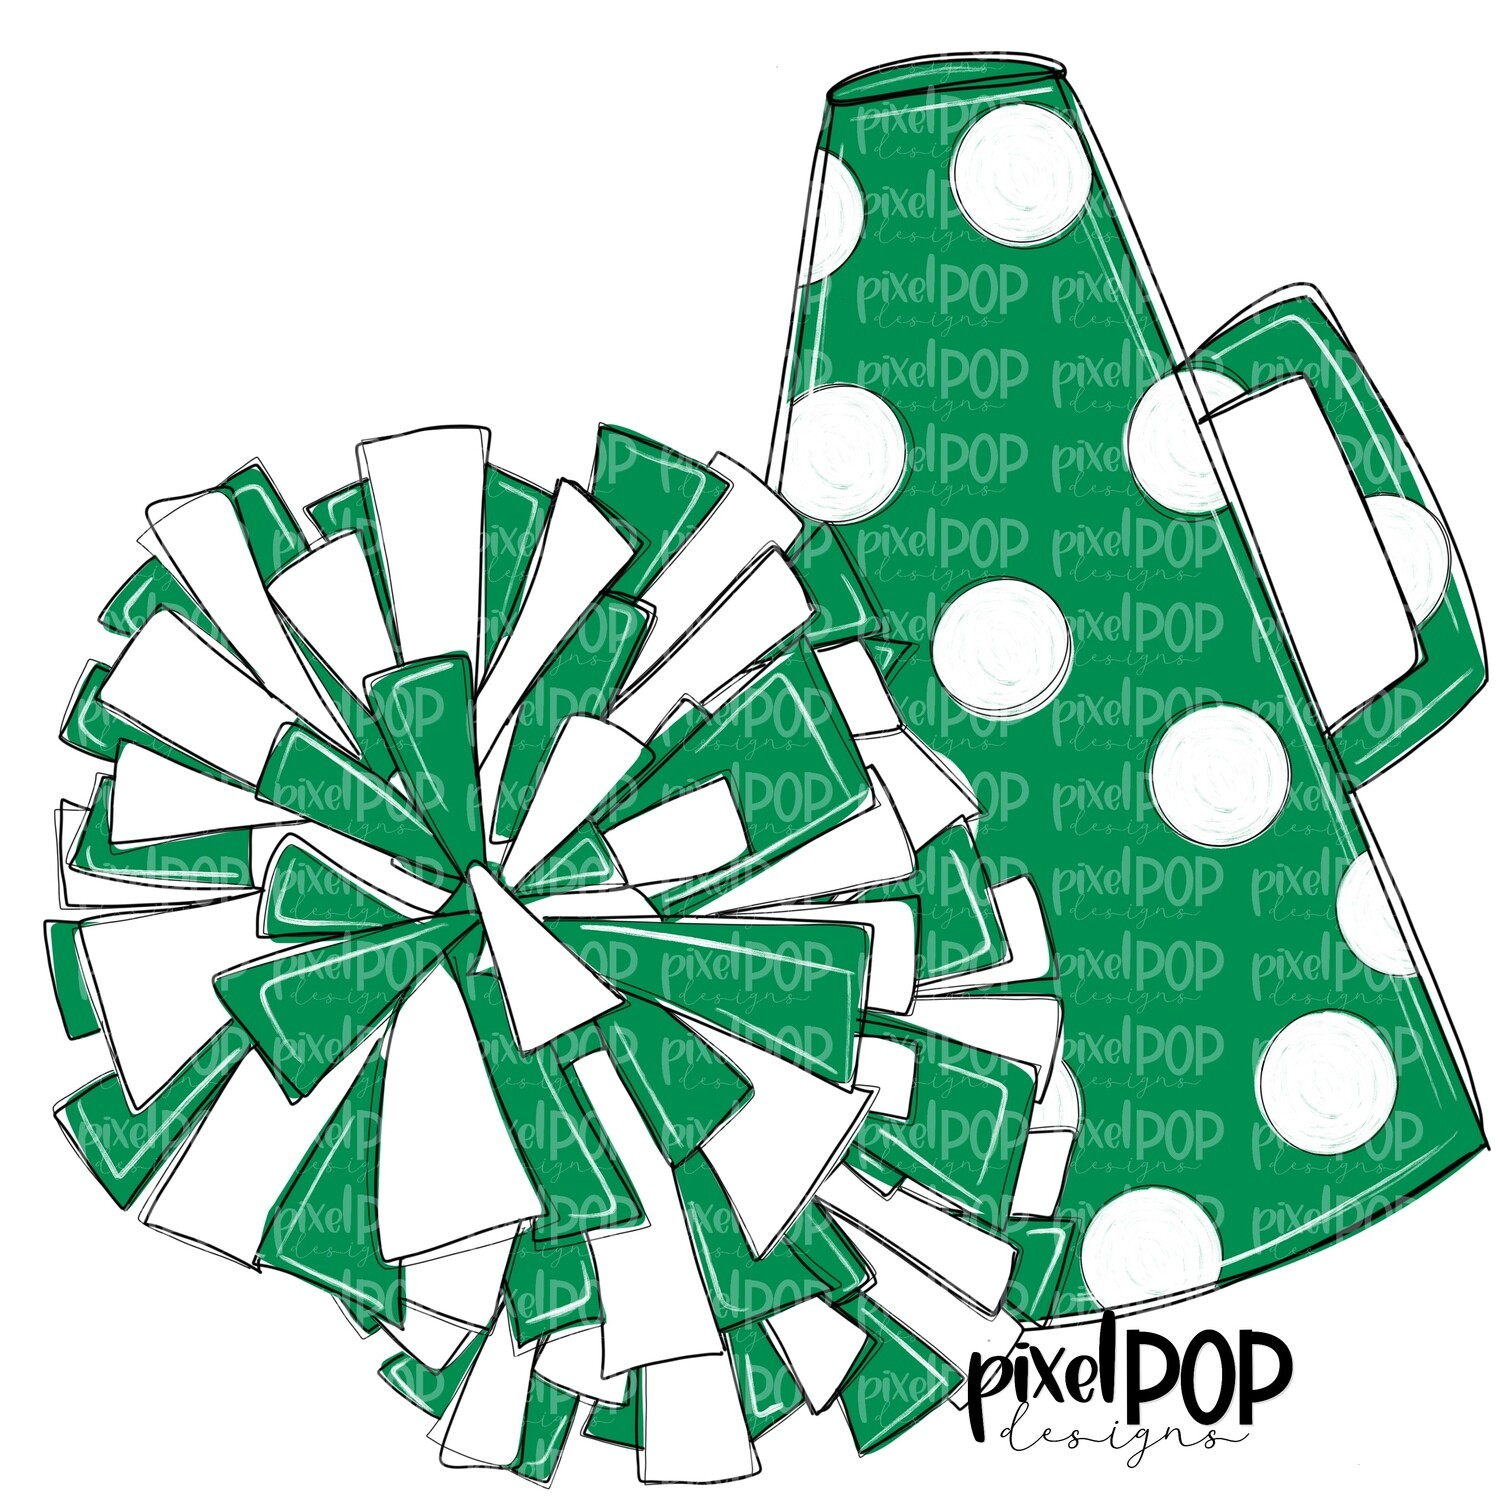 Cheerleading Megaphone and Poms Green and White PNG | Cheerleading | Cheer Design | Cheer Art | Cheer Blank | Sports Art